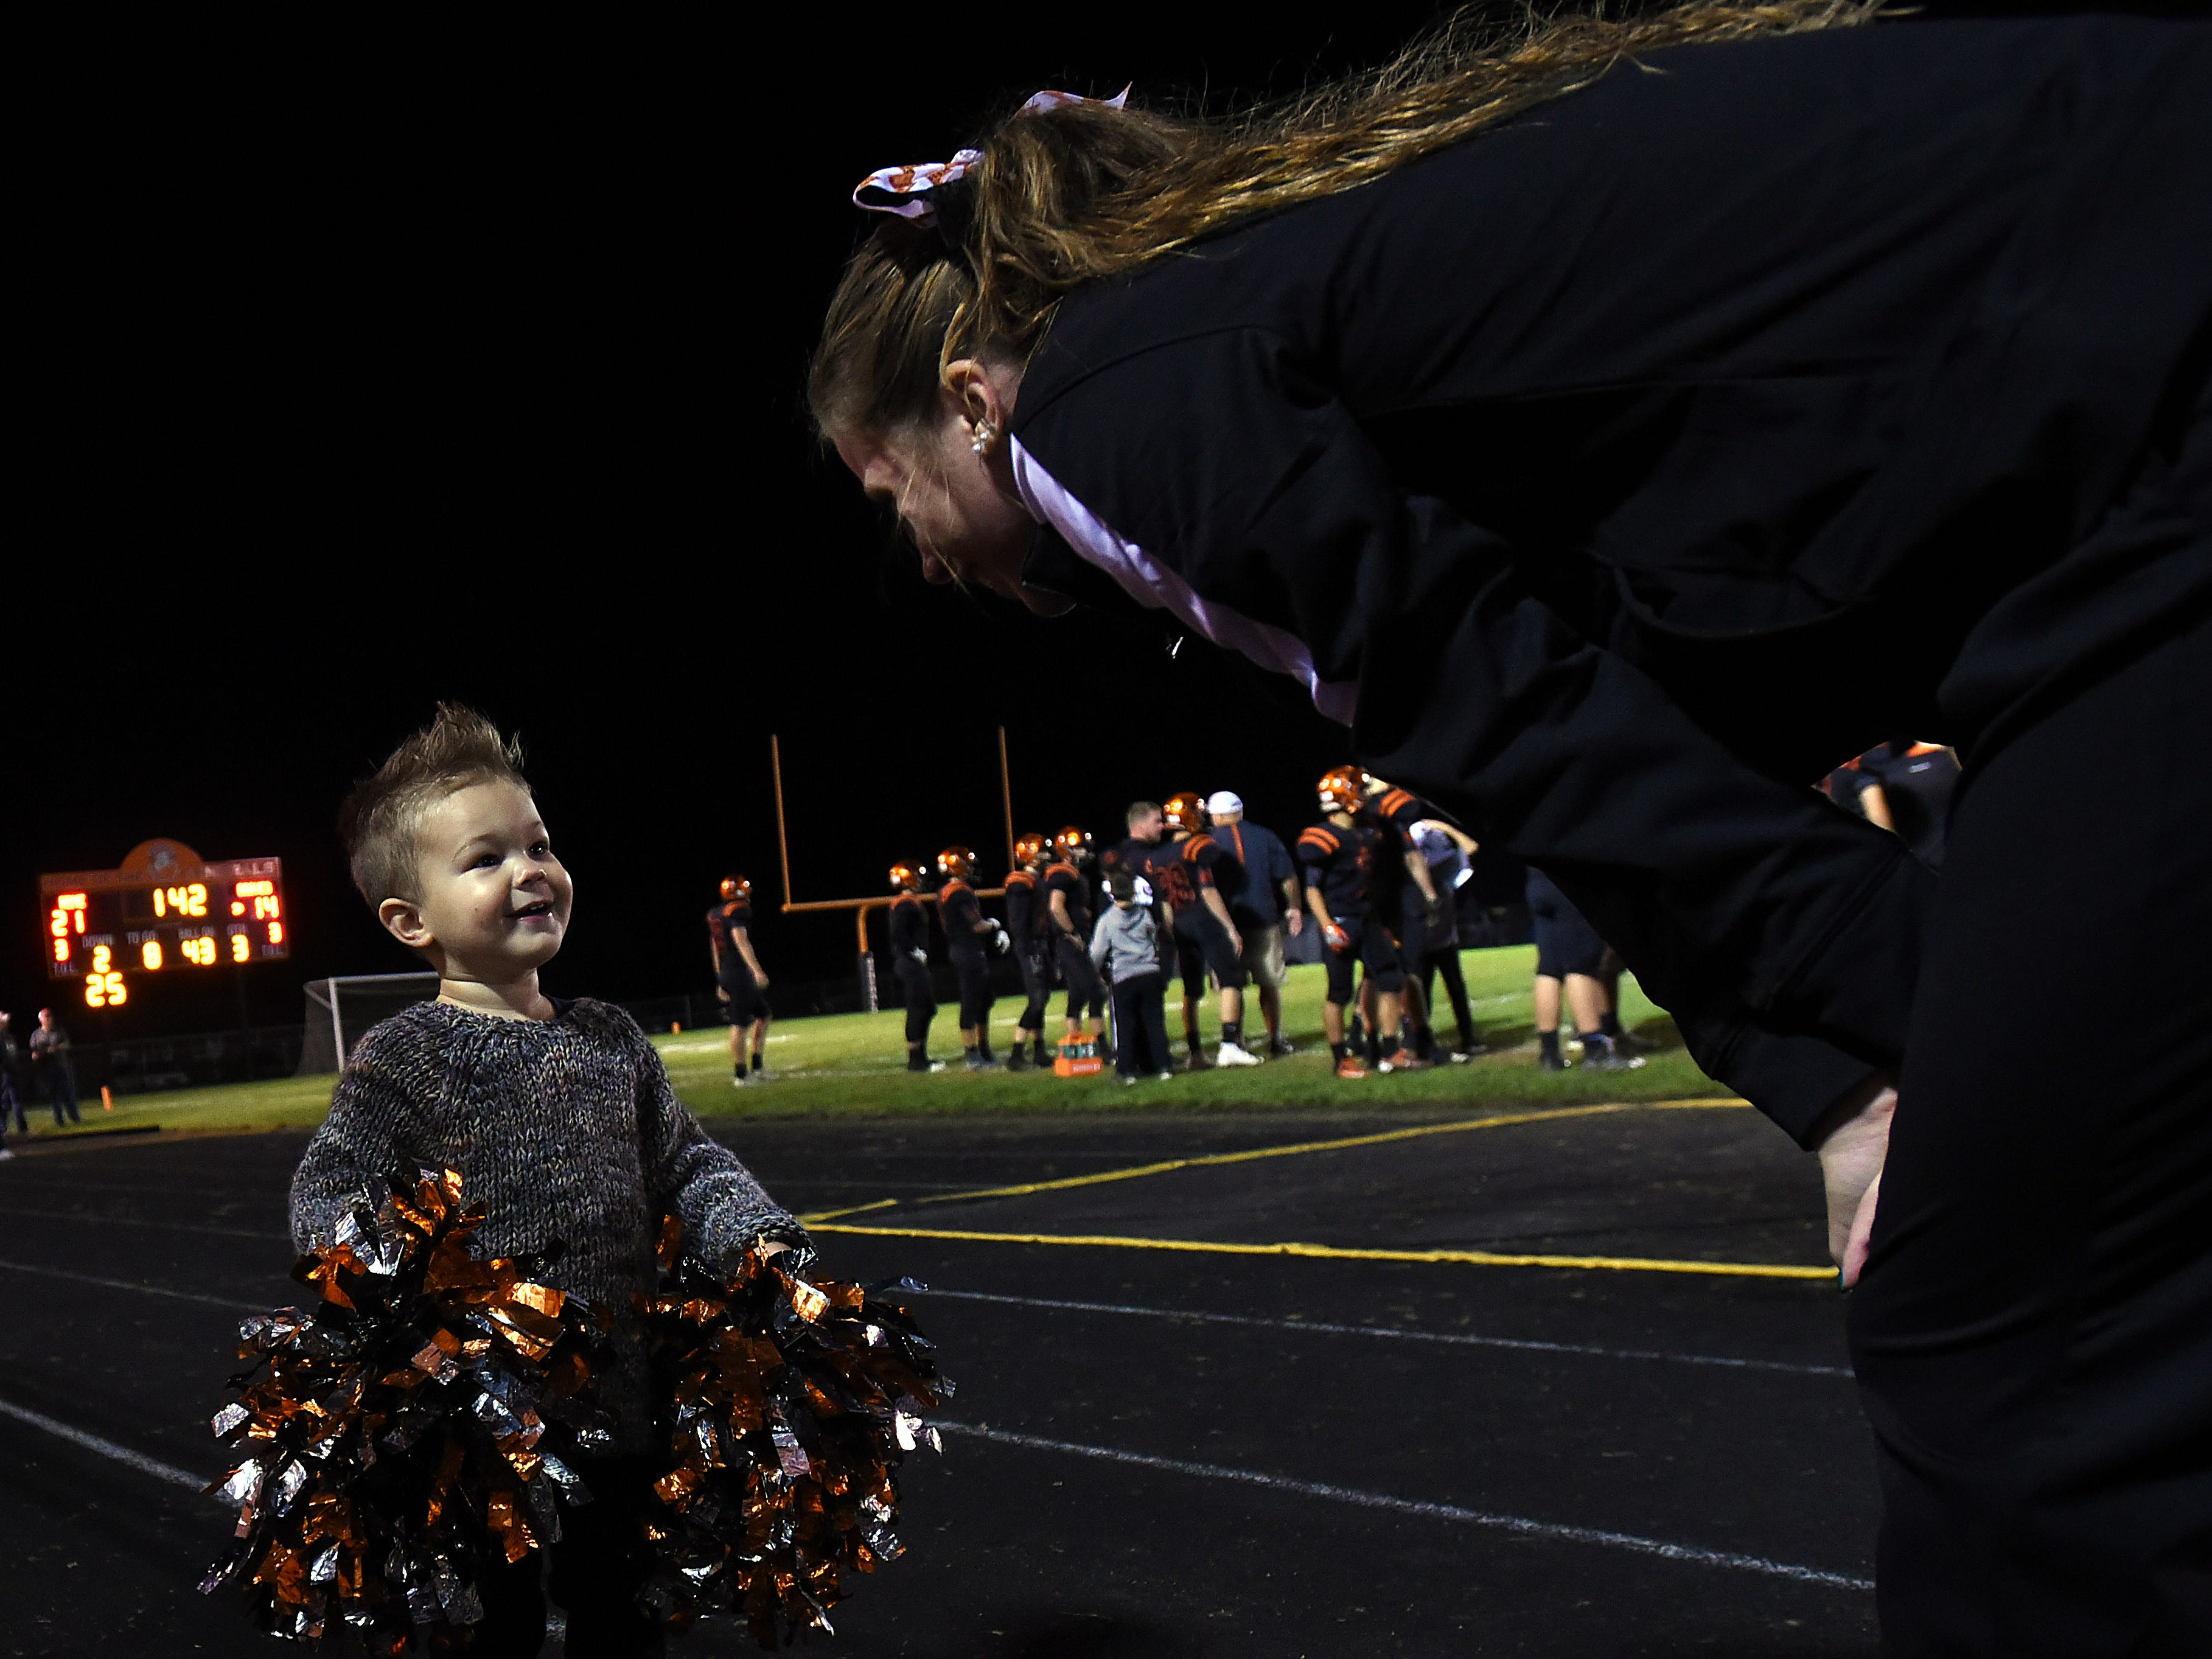 Ridgewood senior cheerleader Alexis Prater (right) tries to get Titan Stipes (left) to wave a set of pom noms during Friday night's football game.